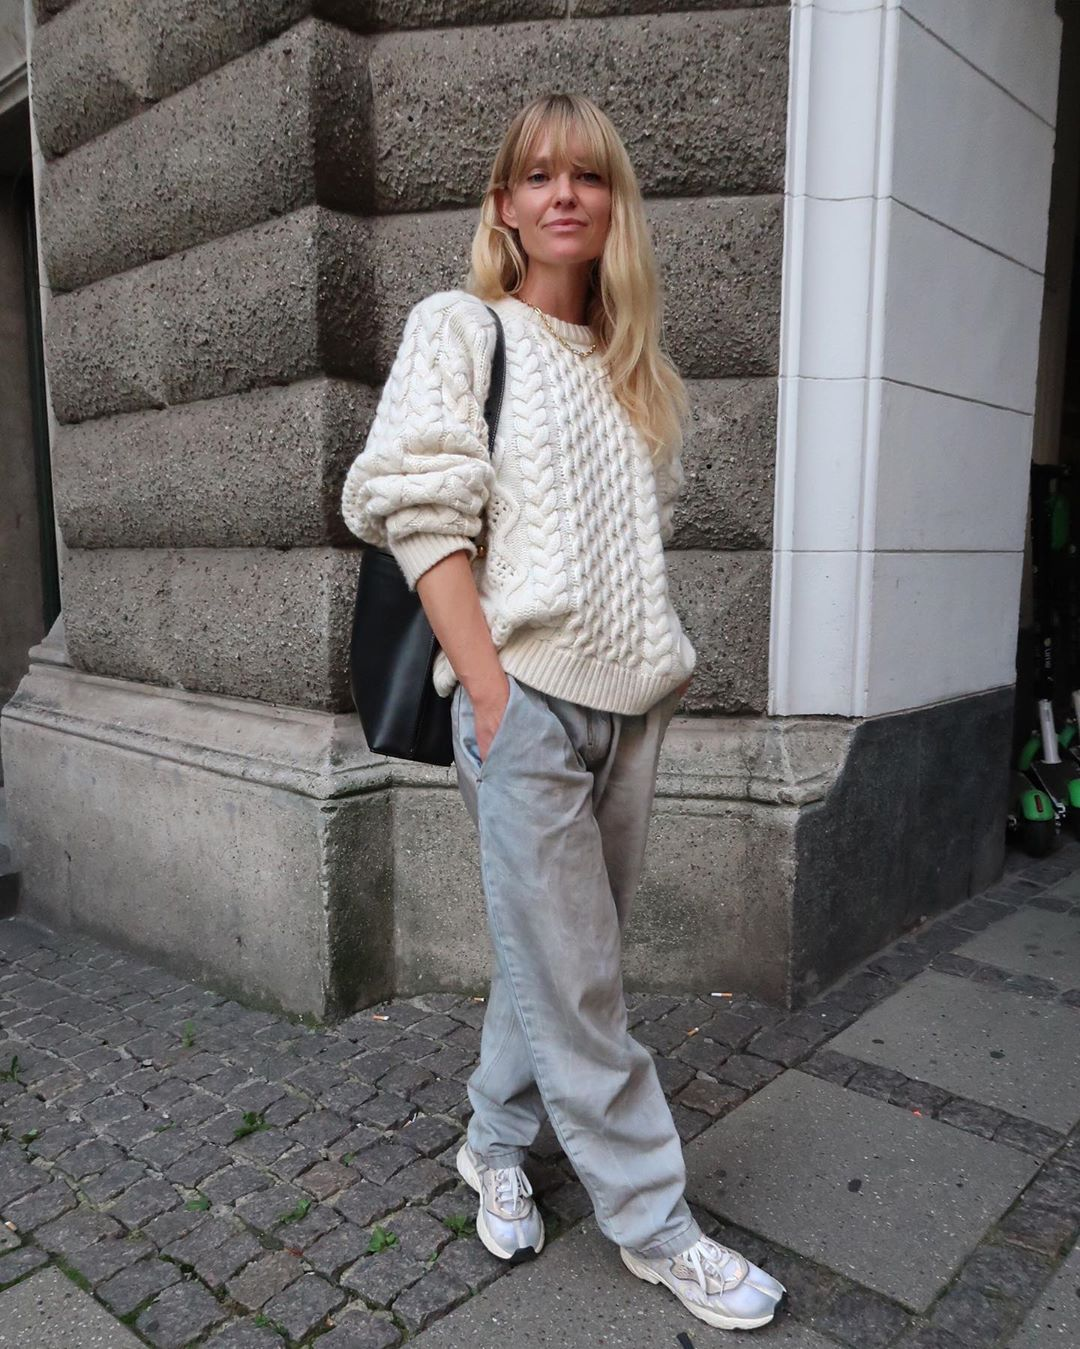 jeanette-madsen-loulou-studio-cable-knit-jumper-instagram